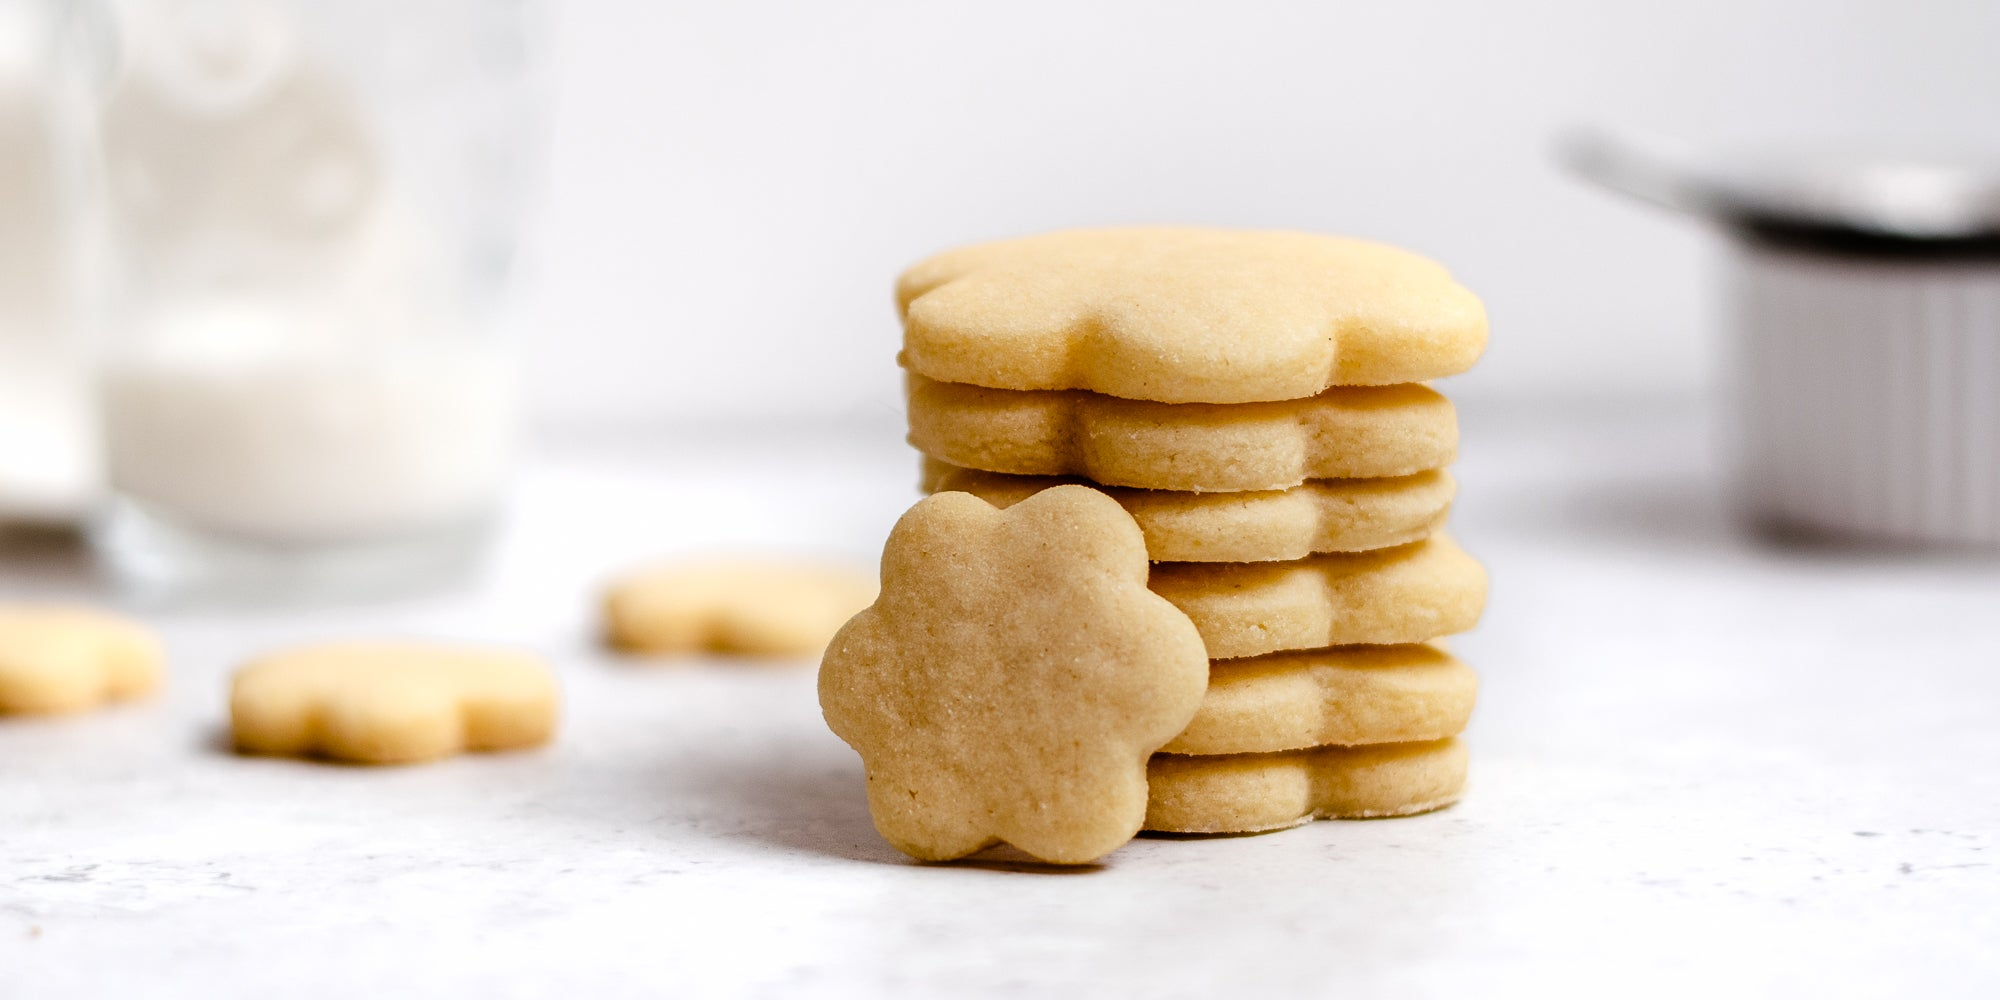 Close up of a stack of biscuits baked with the Basic Biscuit Dough recipe, with a glass of milk in the background